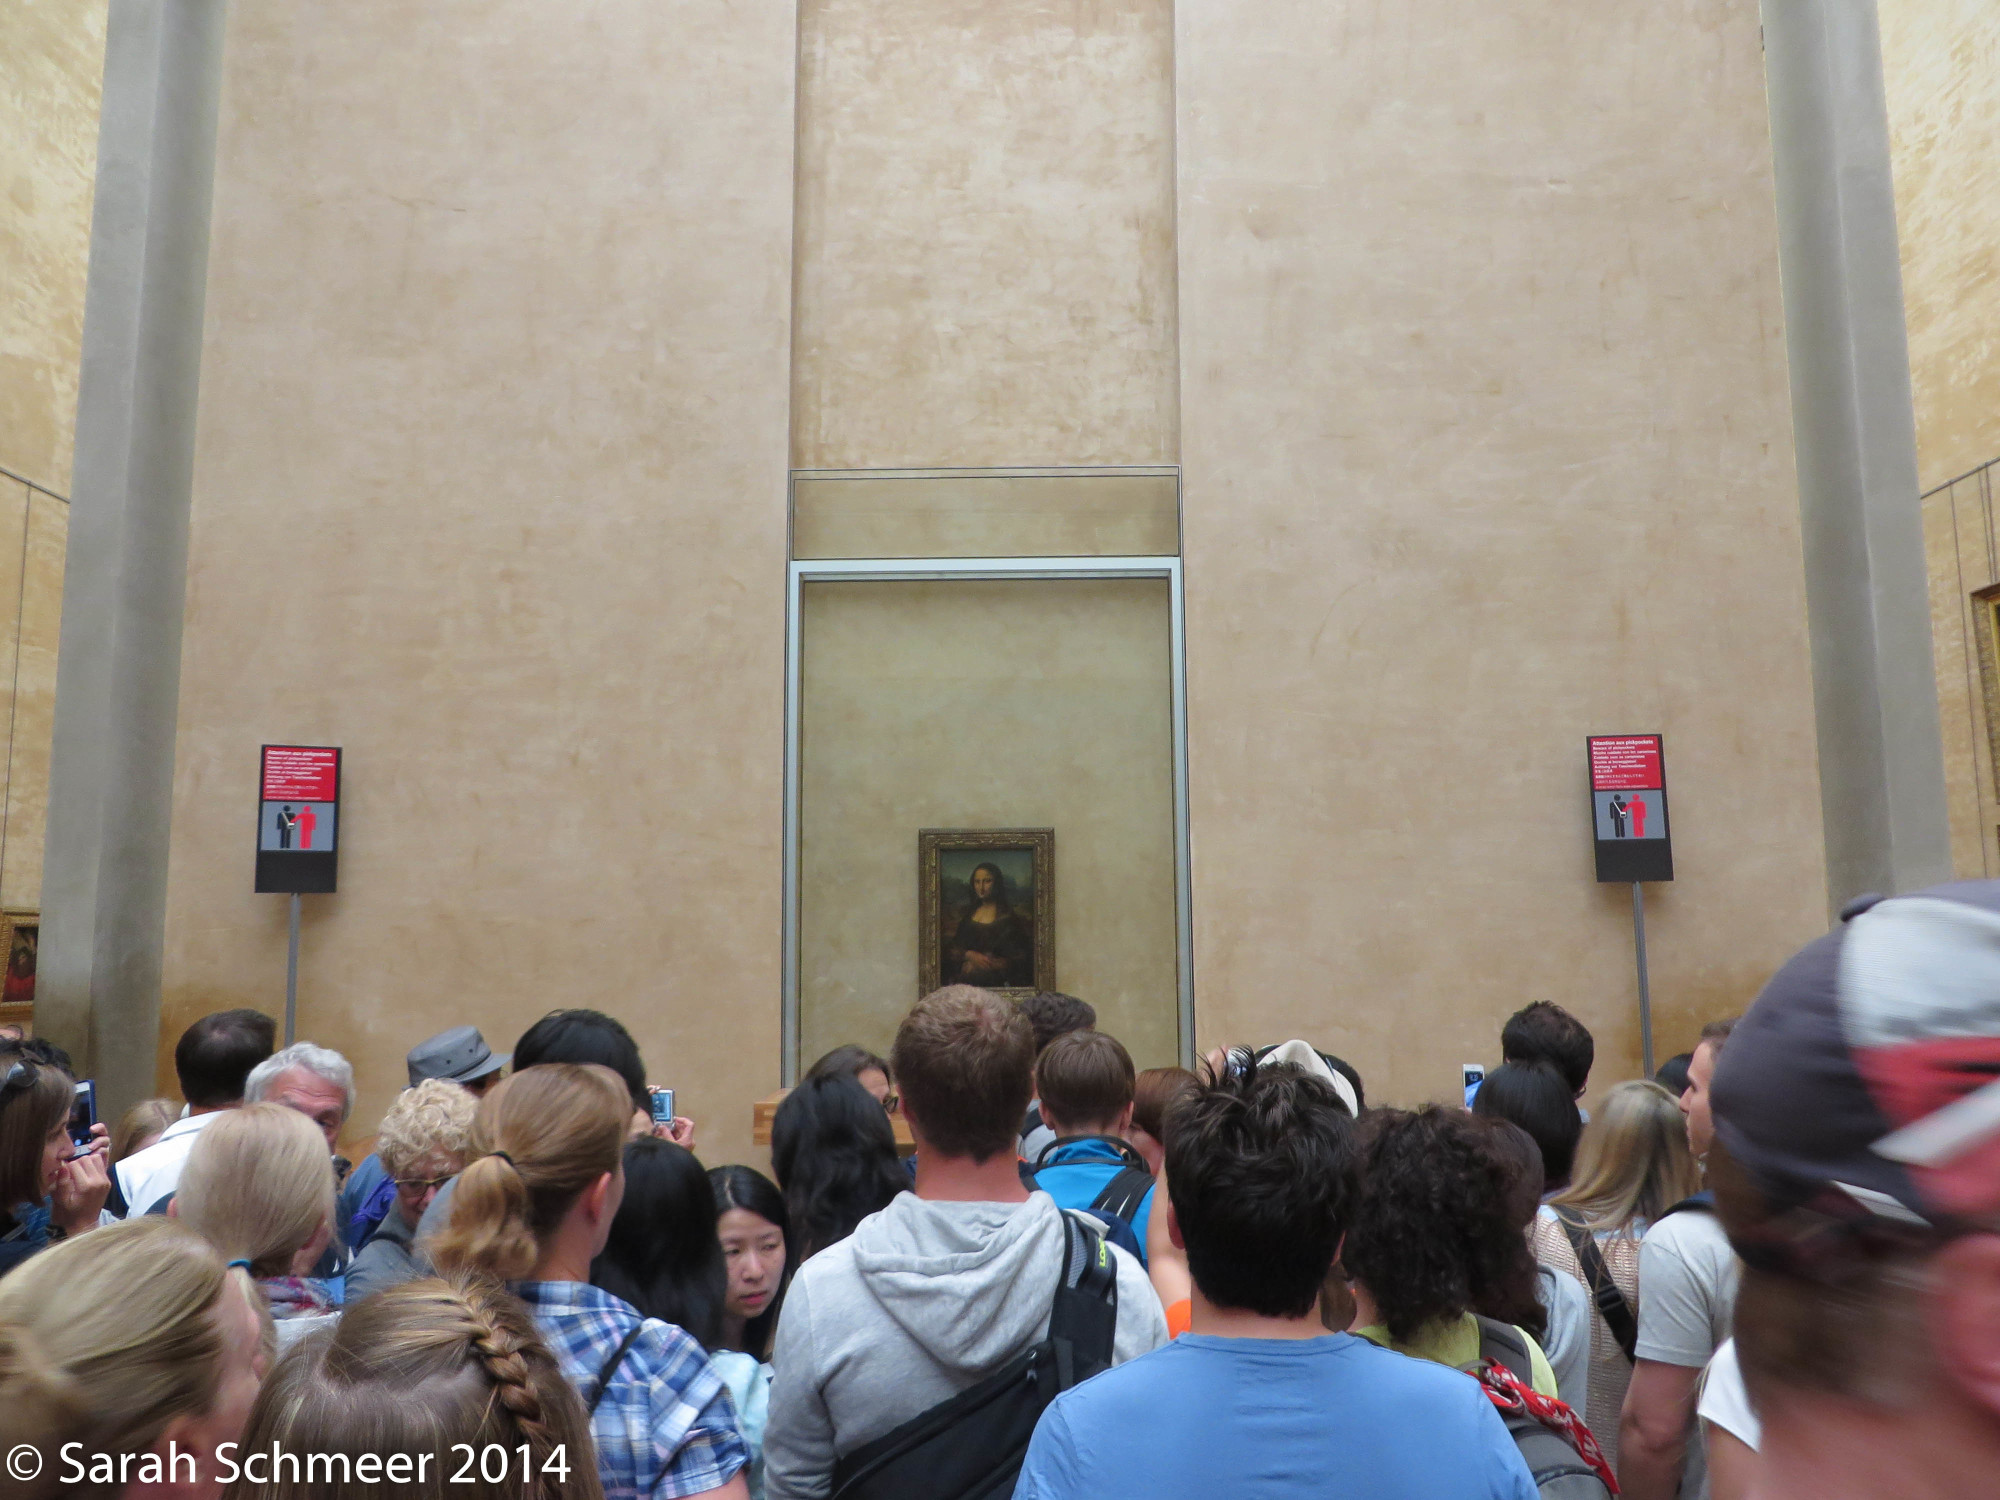 The delicate Mona Lisa safely concealed behind bullet-proof glass and a wall of tourists.